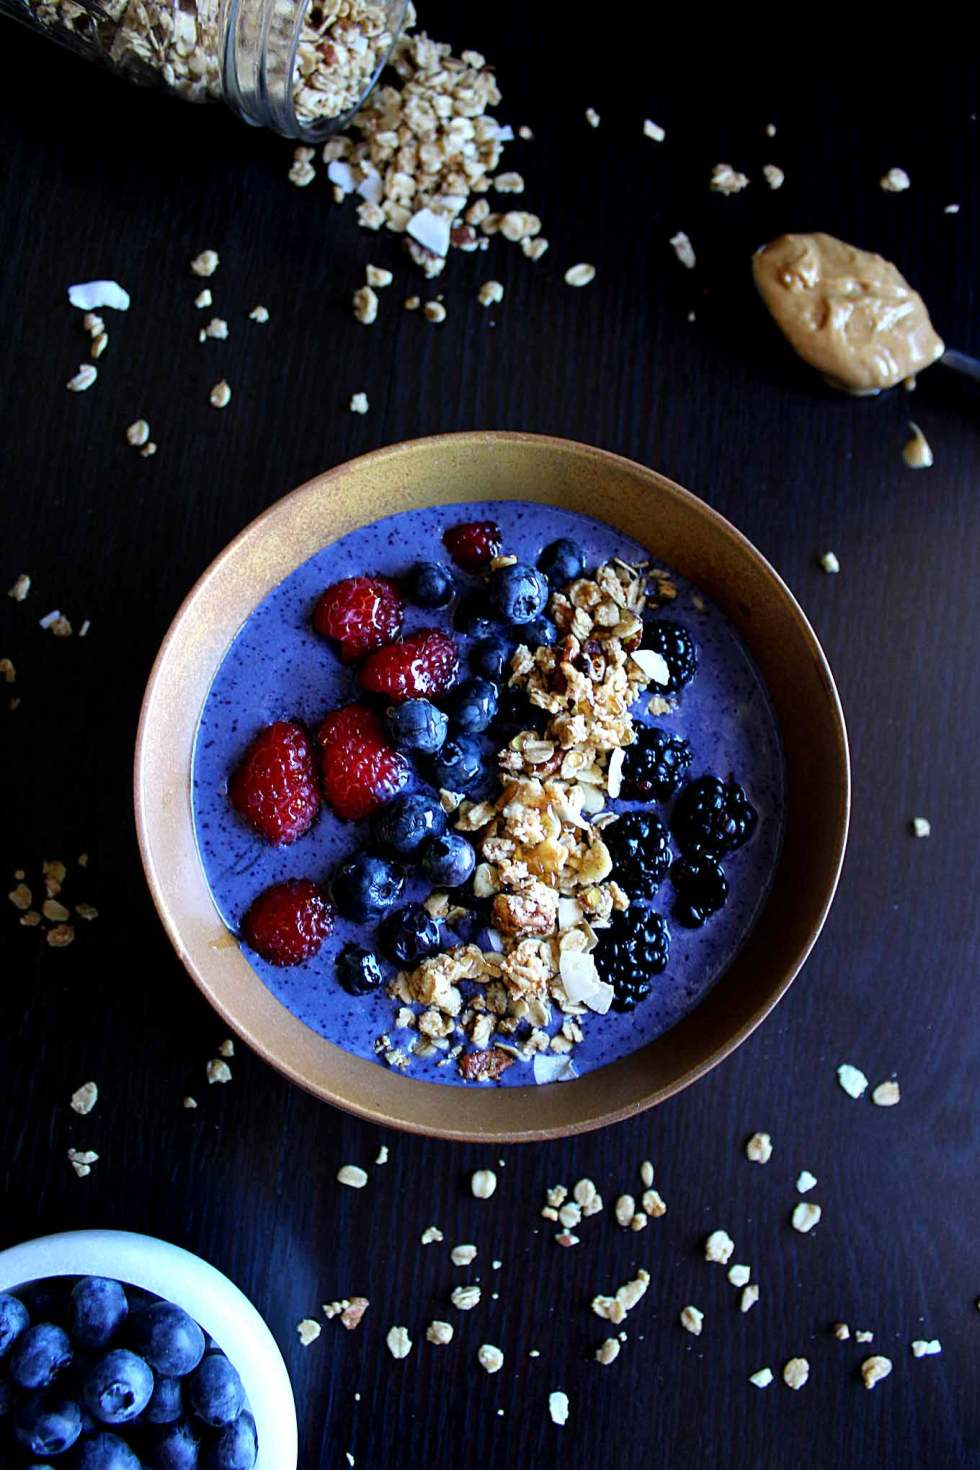 Skinny Peanut Butter Protein Smoothie Bowl | Under 300 Calories | Vegan Protein Smoothie | Peanut Butter Smoothie Bowl | Homemade Granola | Skinny Smoothie